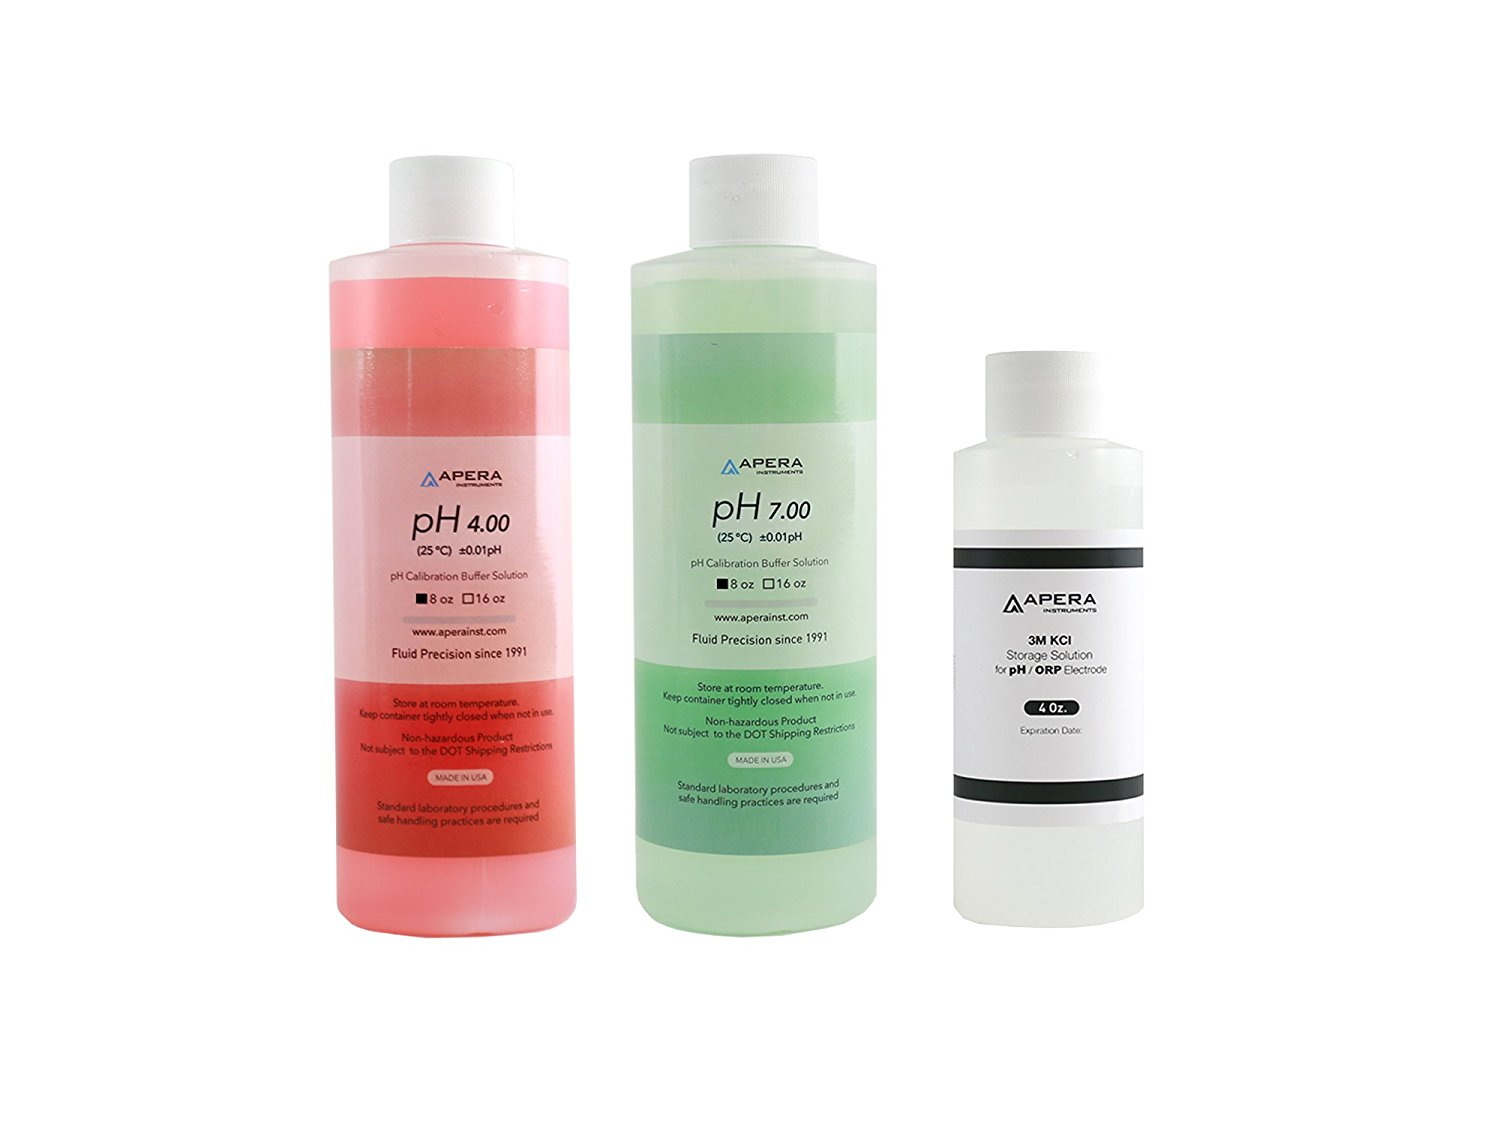 Apera Calibration Buffer Solution and Storage Solution on Amazon